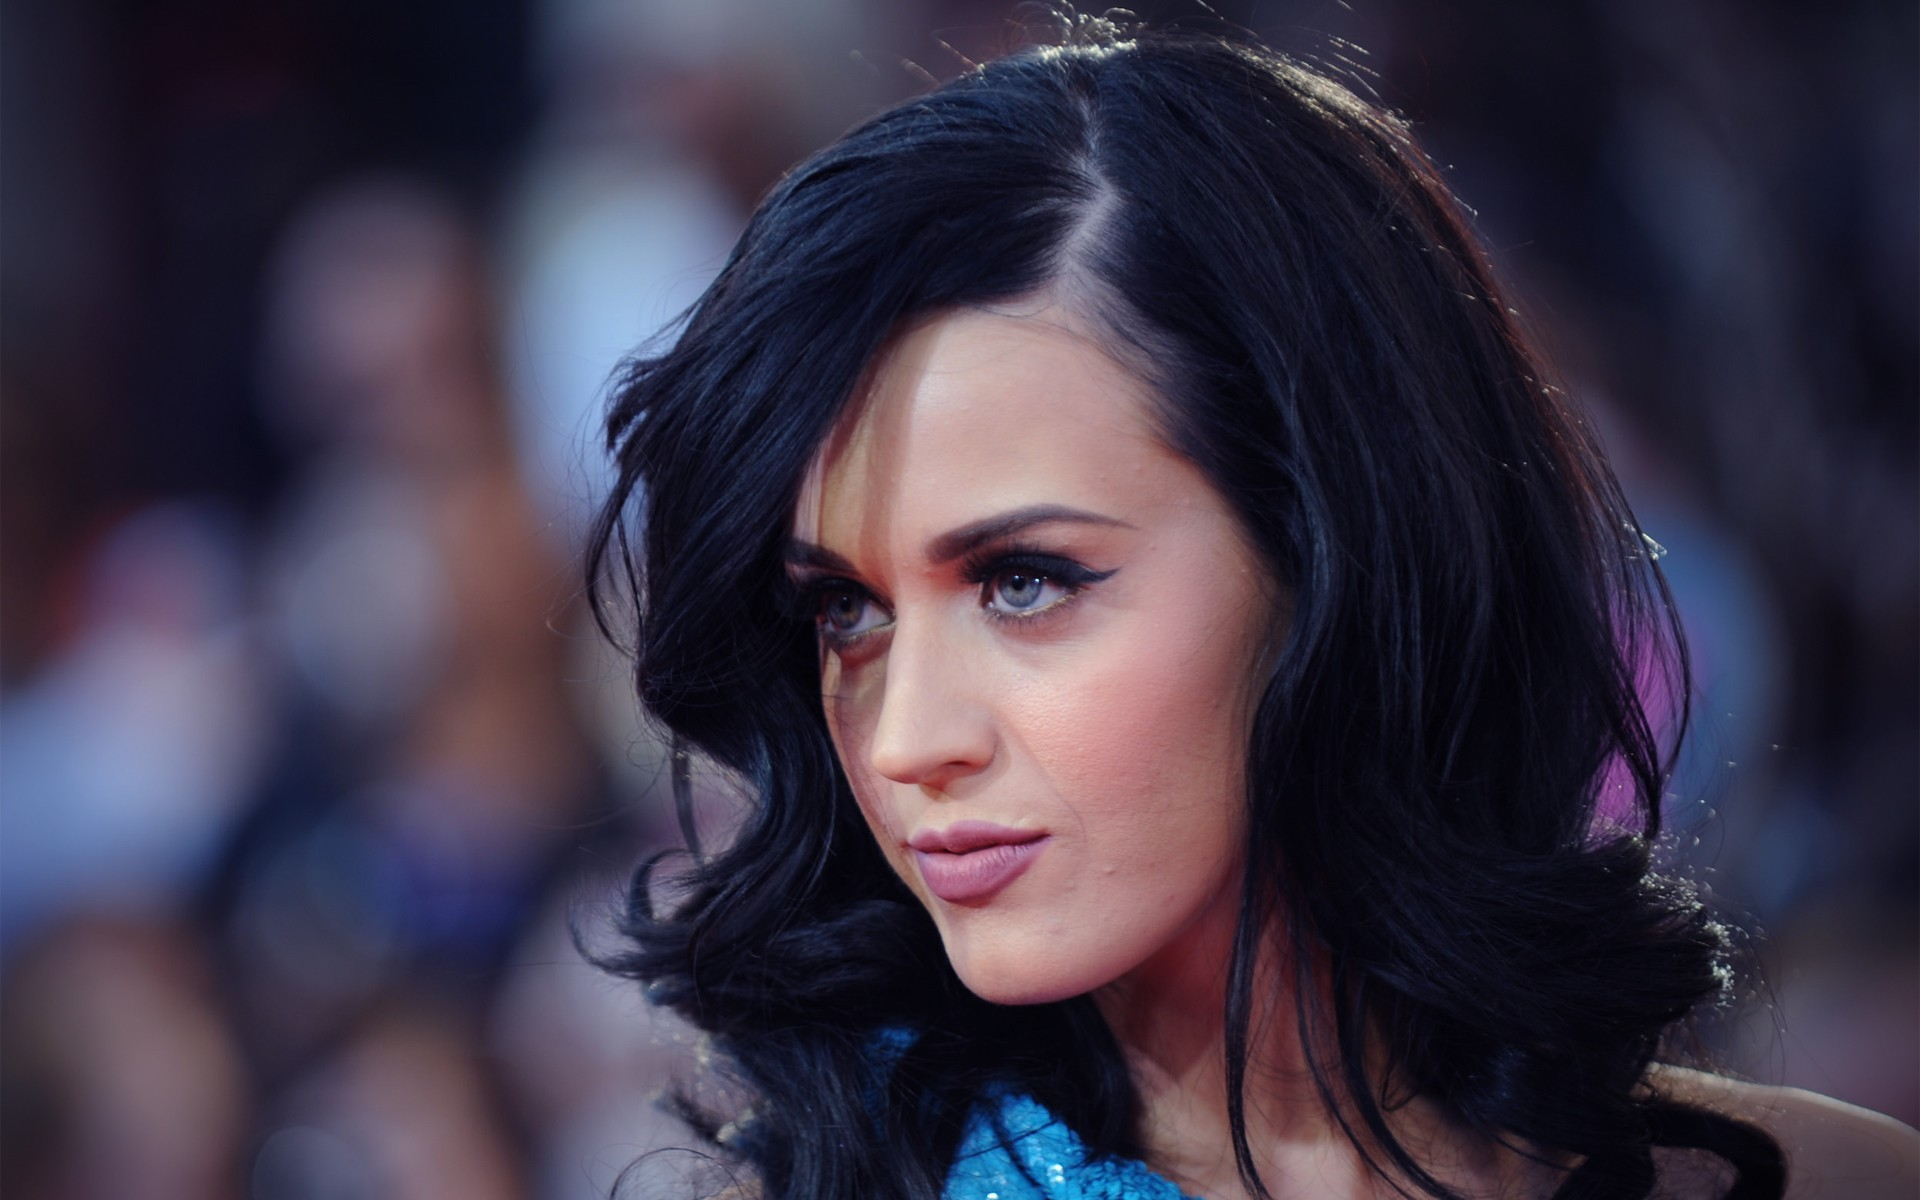 Katy Perry Wallpaper 52